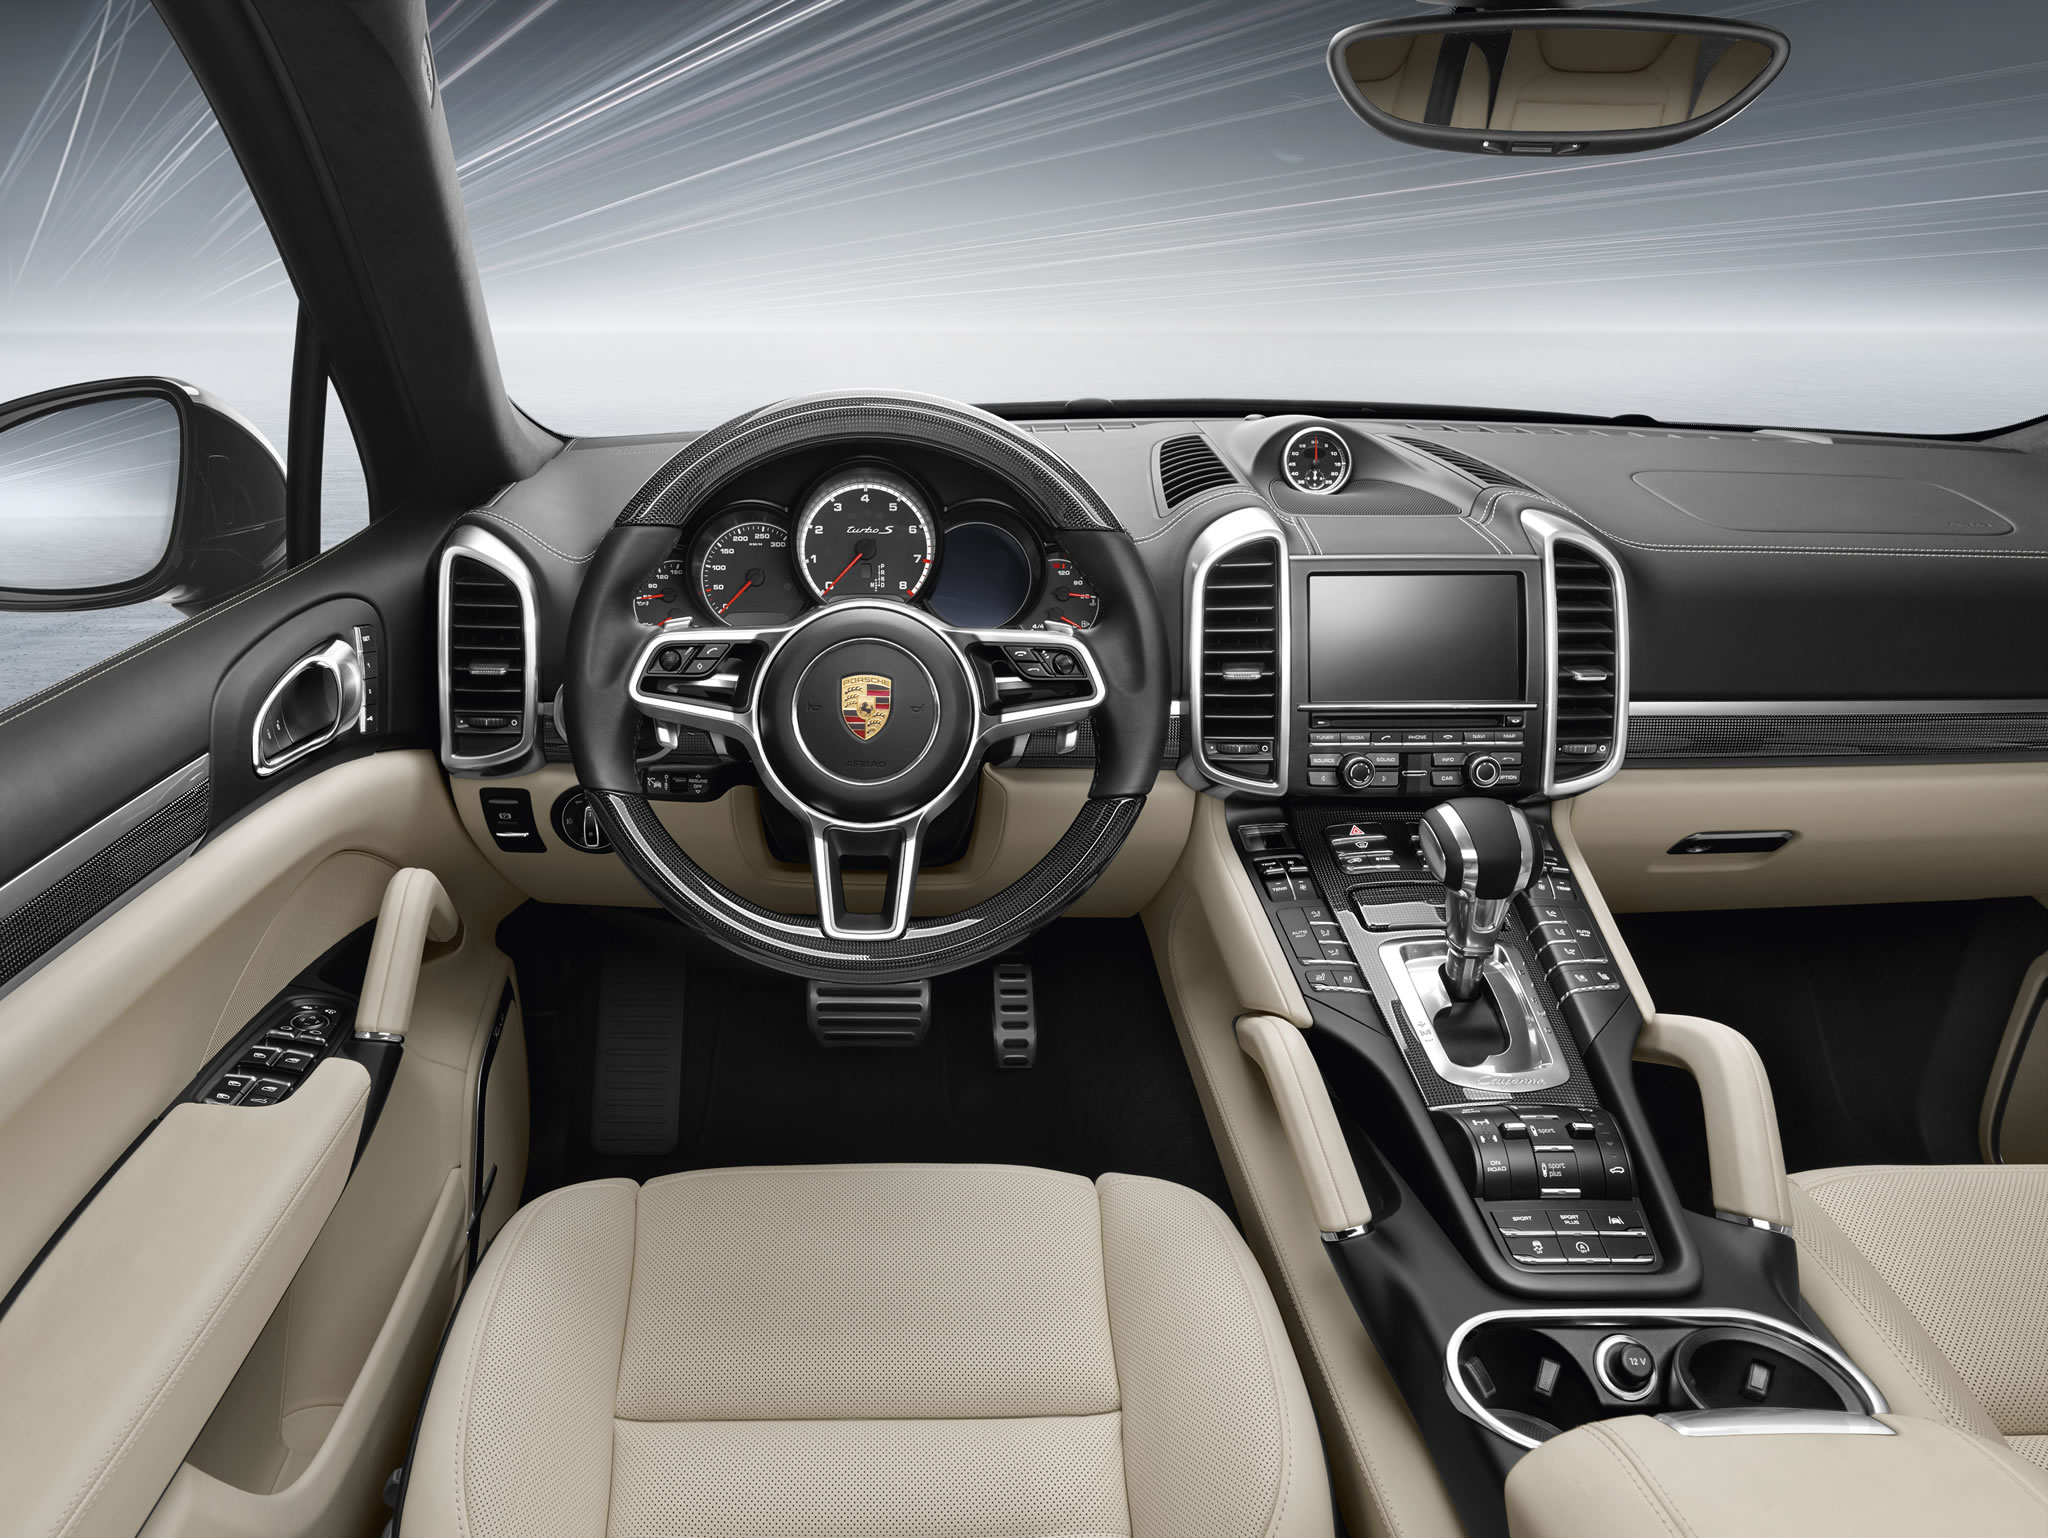 2016 Porsche Cayenne Turbo S Interior Photo Black Creme